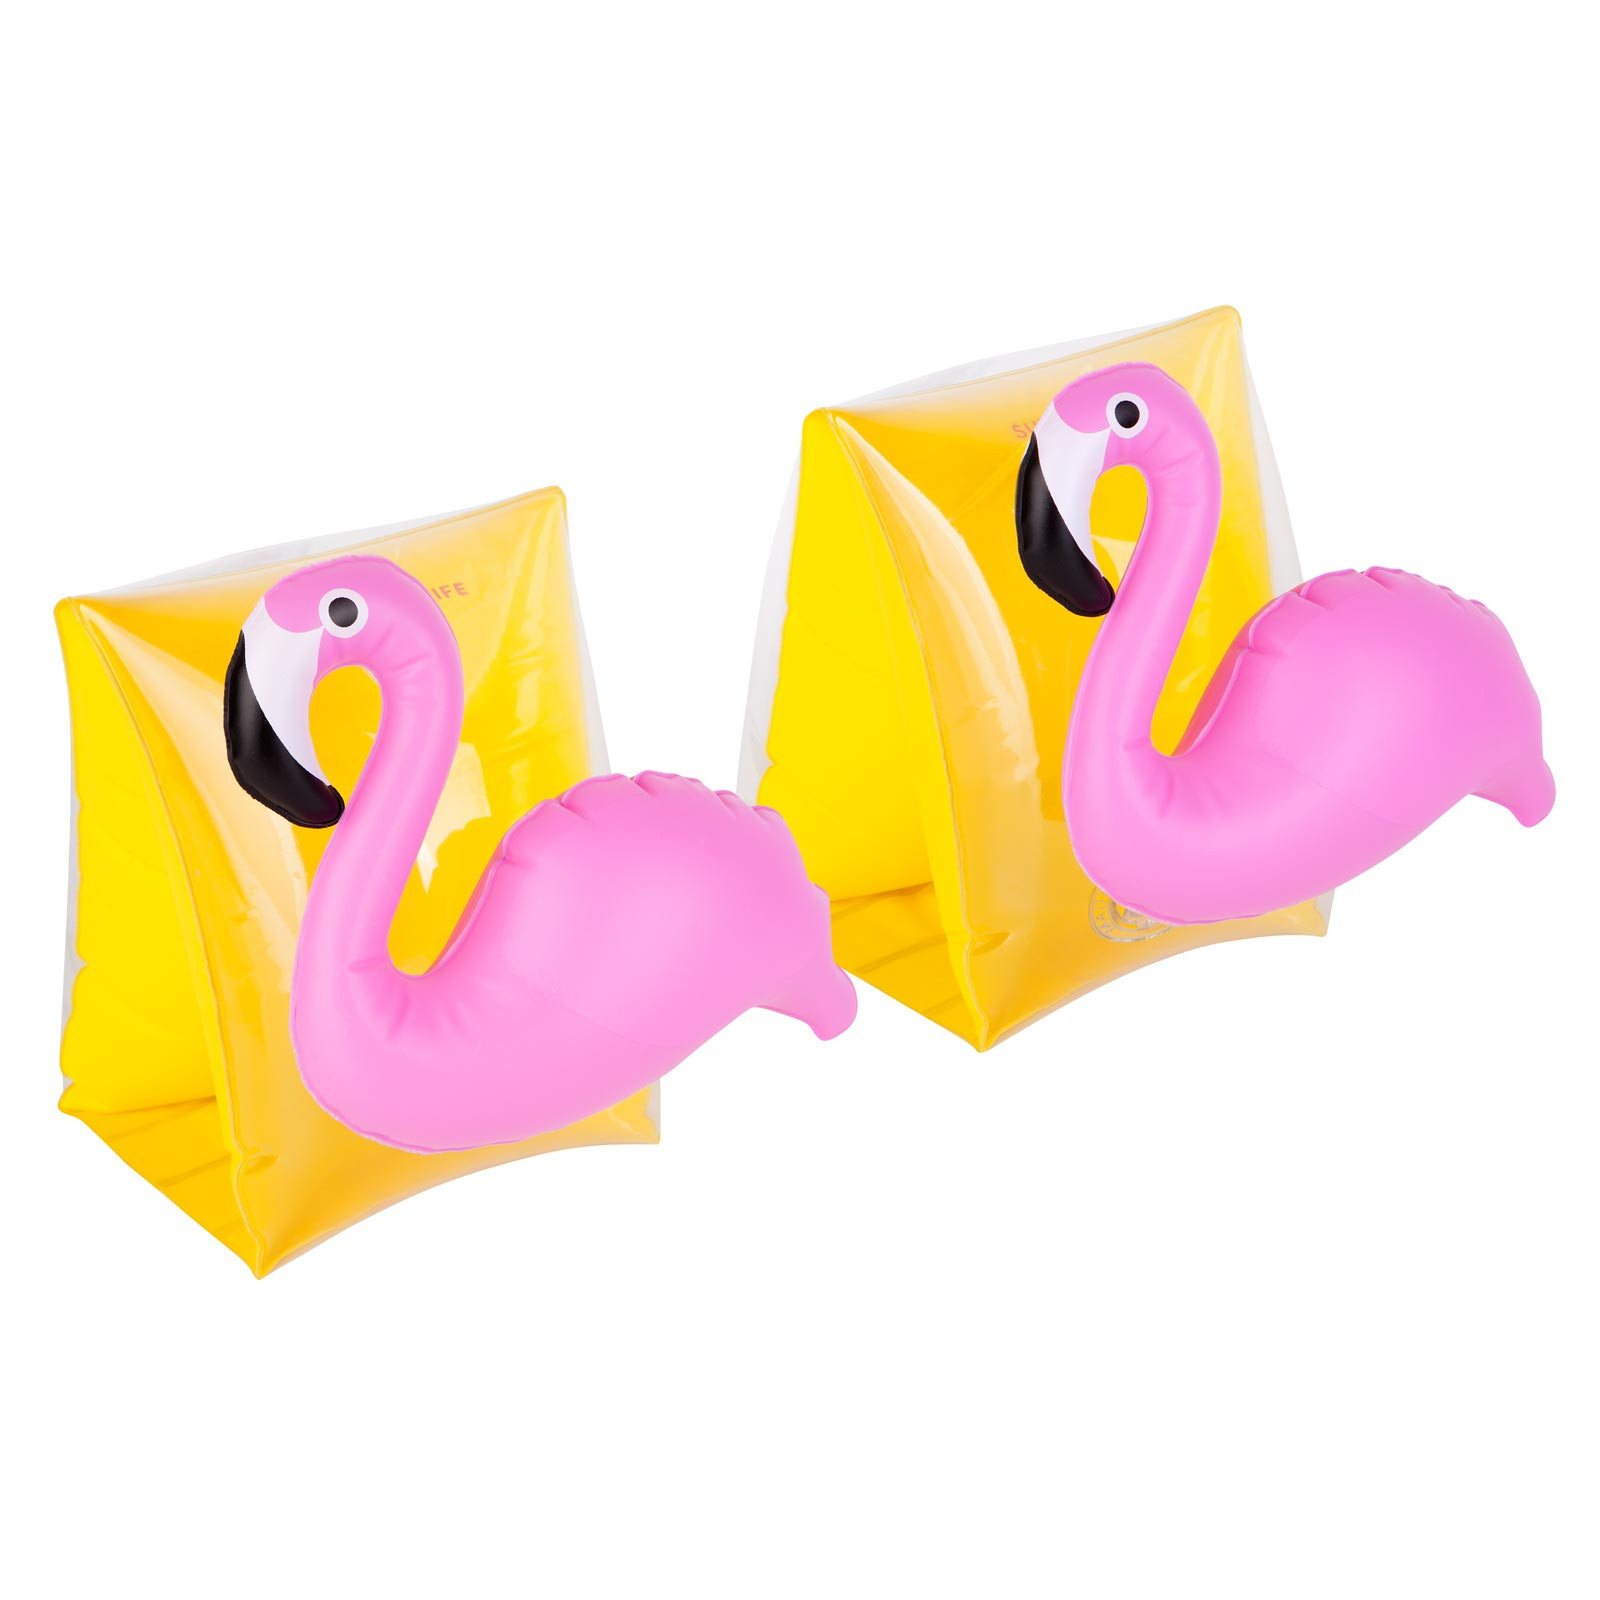 Brassards enfant flamant rose gonflables